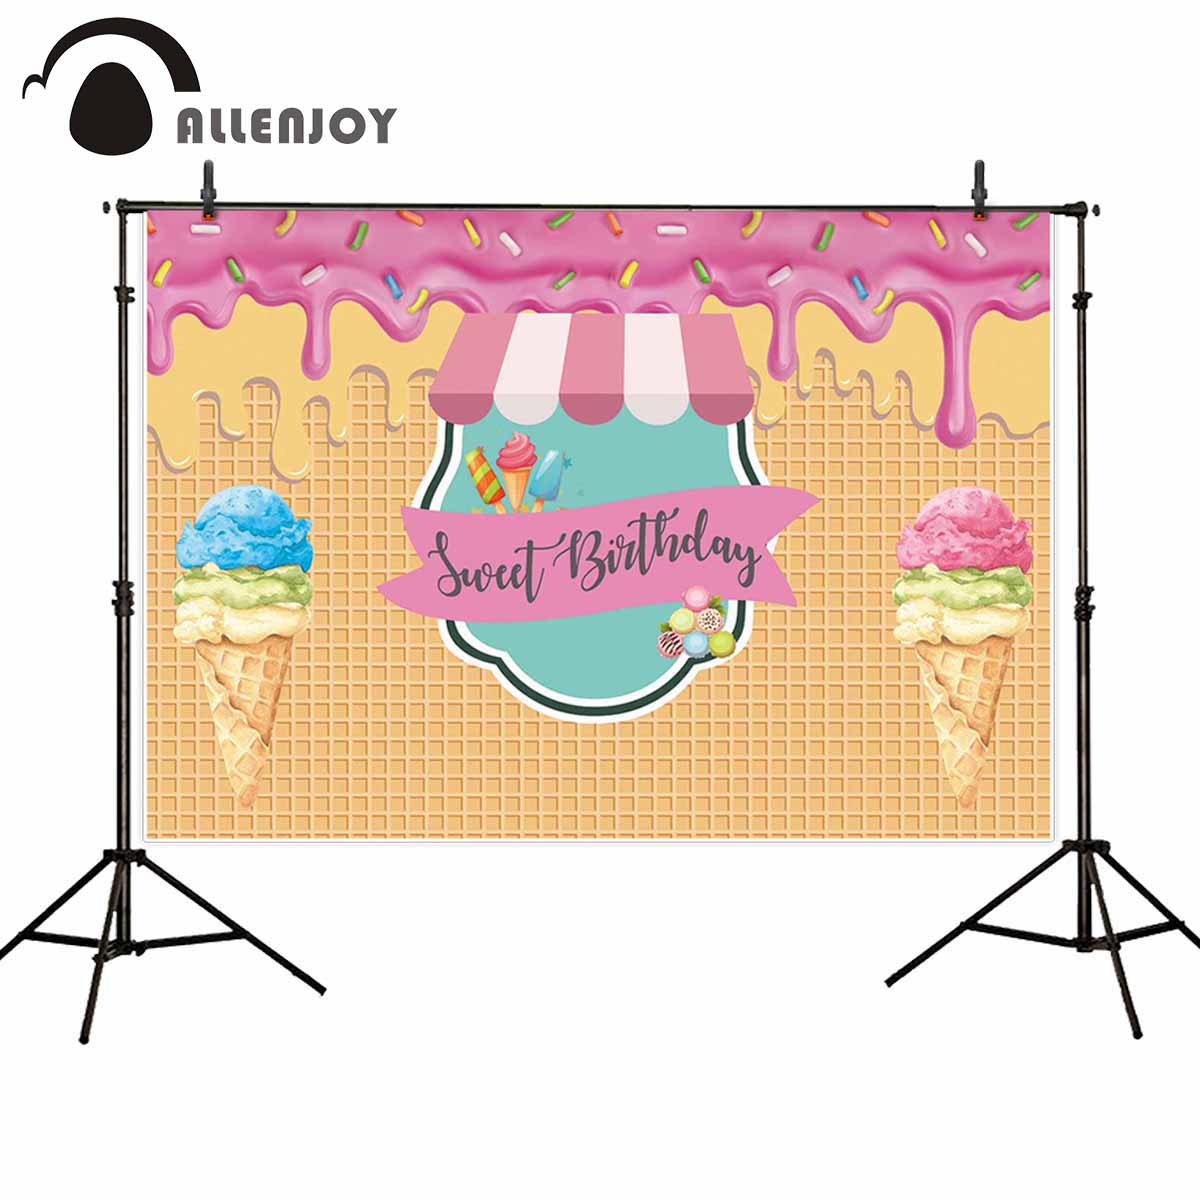 Allenjoy Ice Cream Party Wallpapers Slime Macaroon Donuts Waffles Dessert Event Photocall Decor Sweet Birthday Girl Backdrops